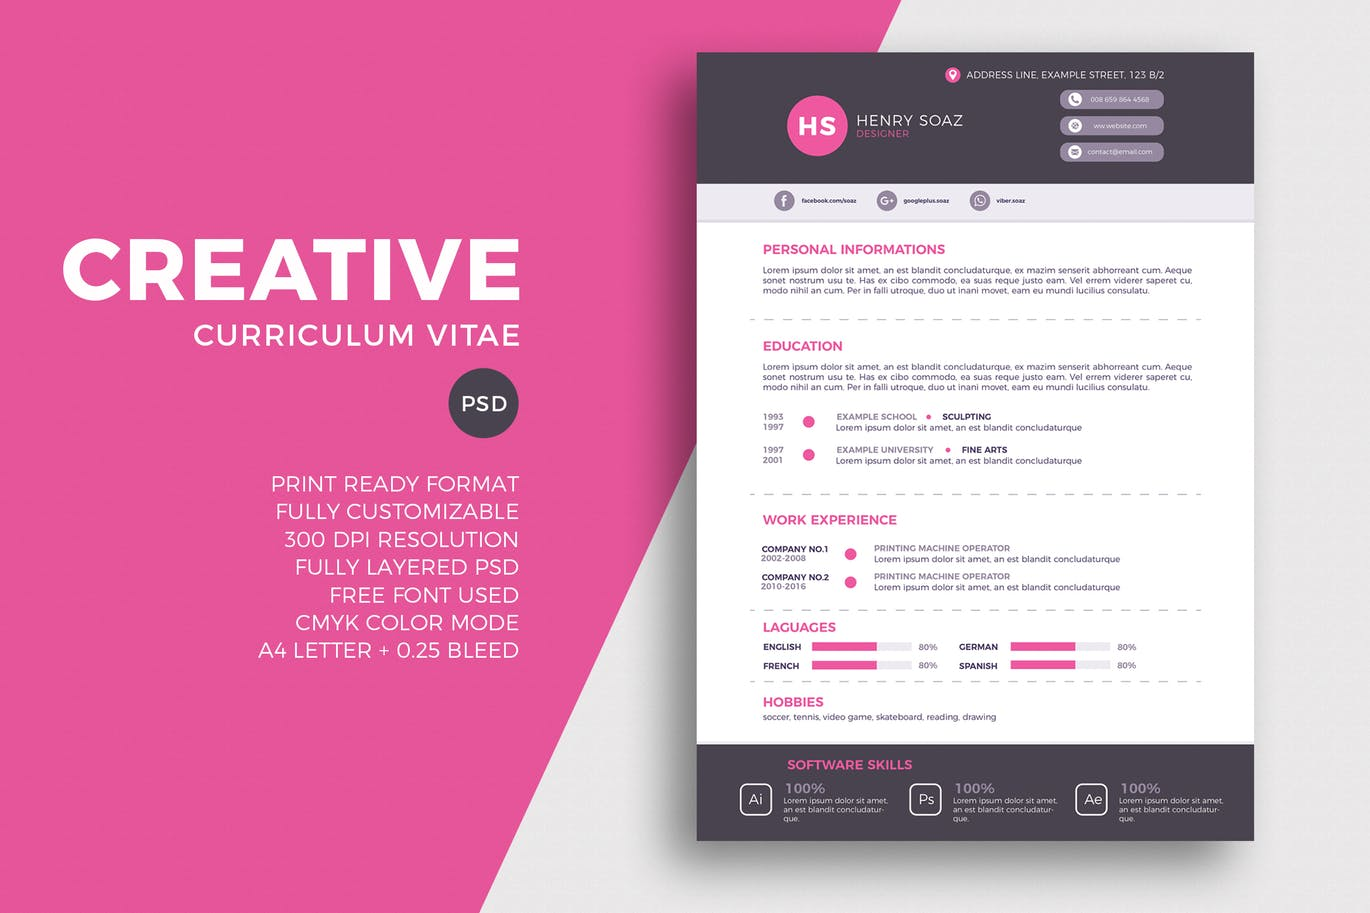 Creative-Resume-CV-Template 50+ Best CV & Resume Templates 2020 design tips